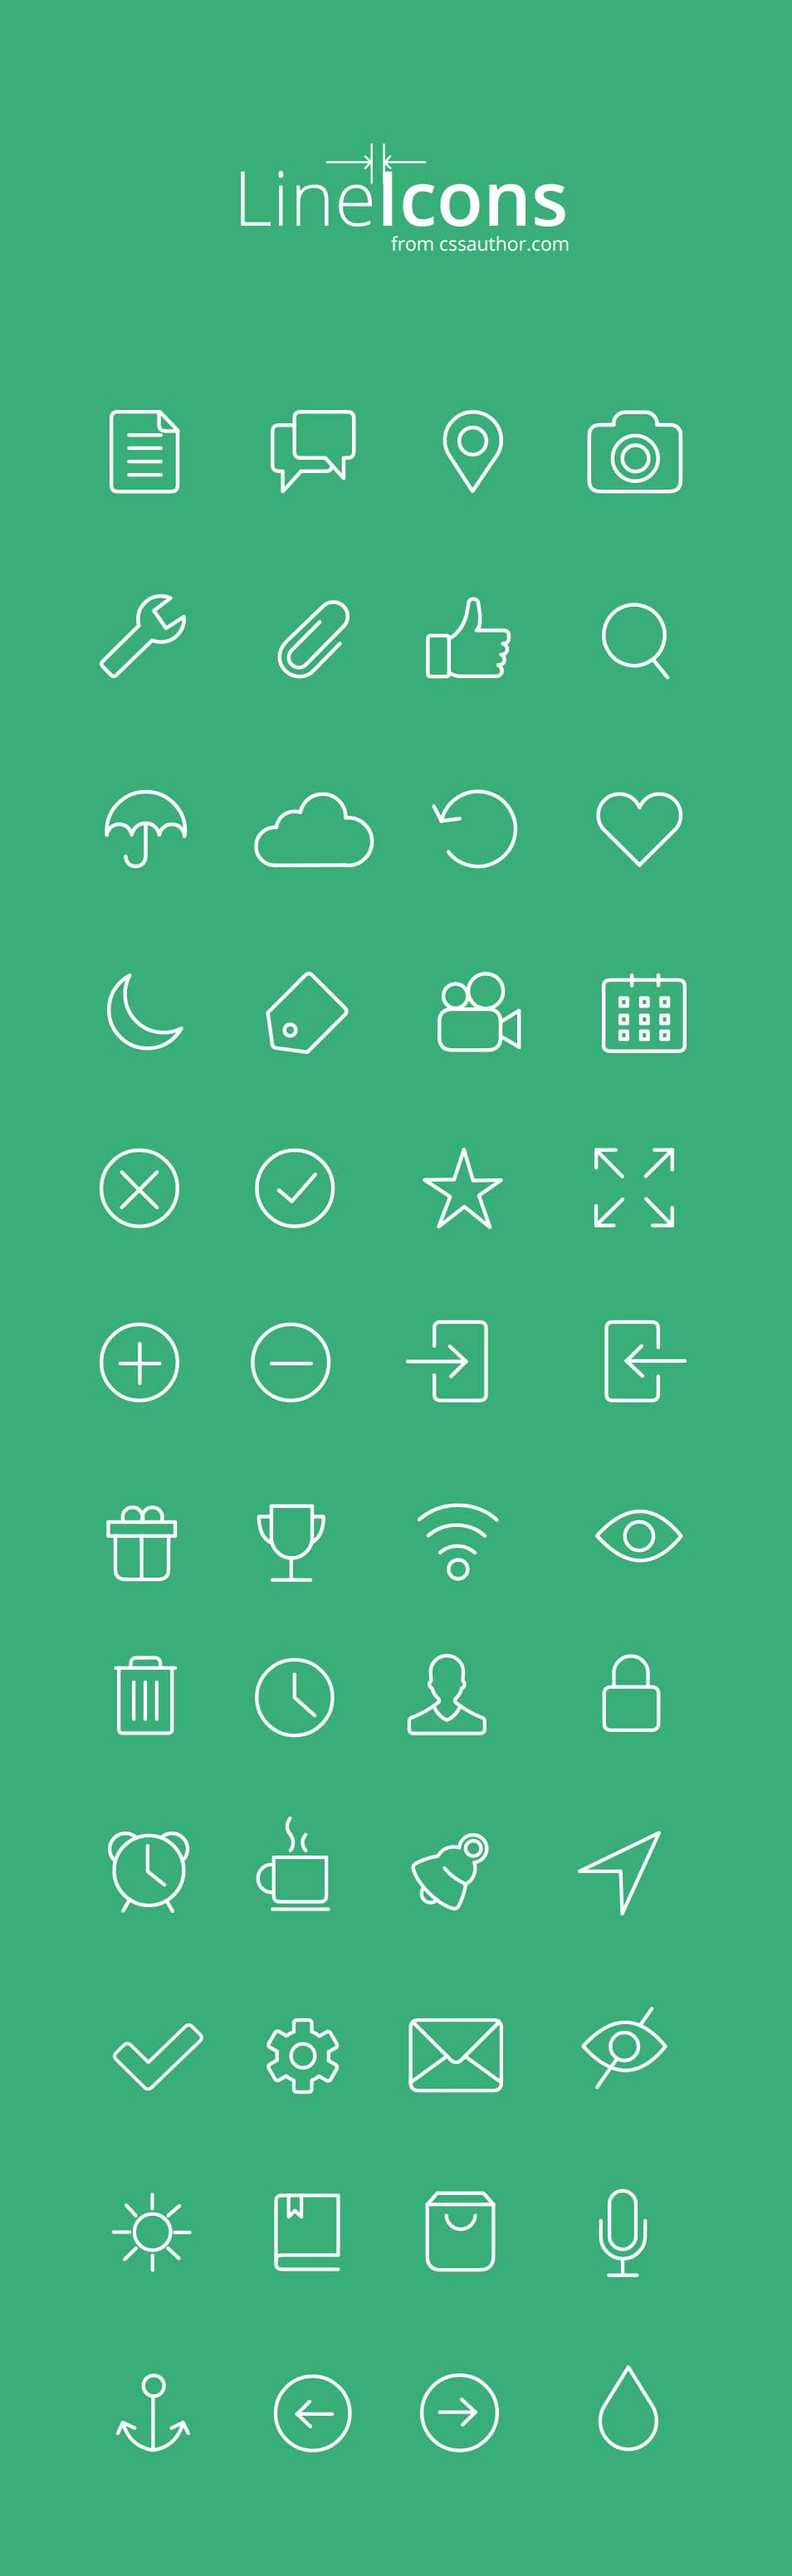 Free Line Icons for Web and UI Designs